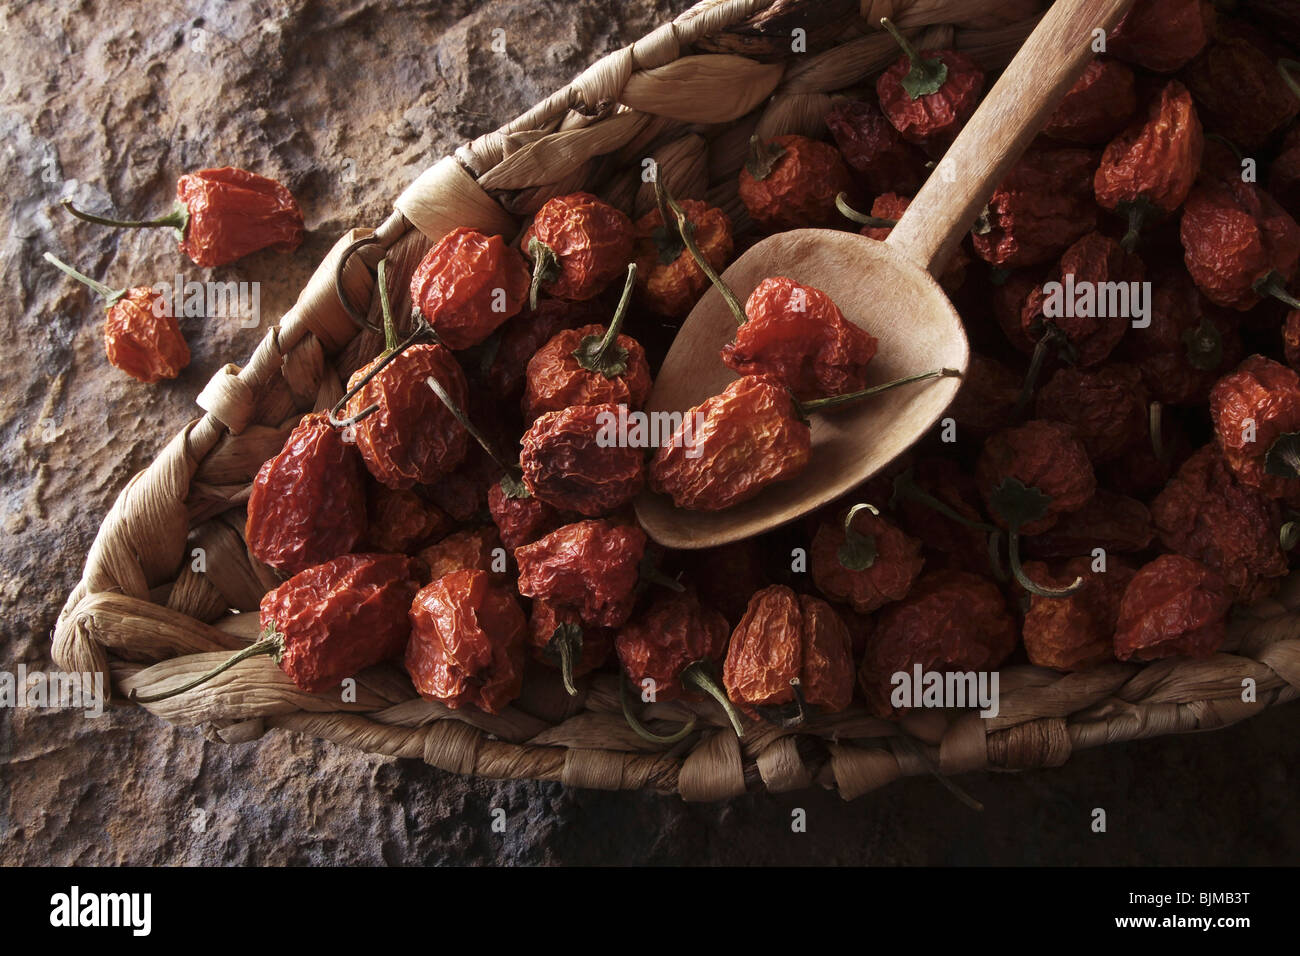 Mini-Peppers (Capsicum) with a wooden spoon in a wicker basket on a stone surface - Stock Image